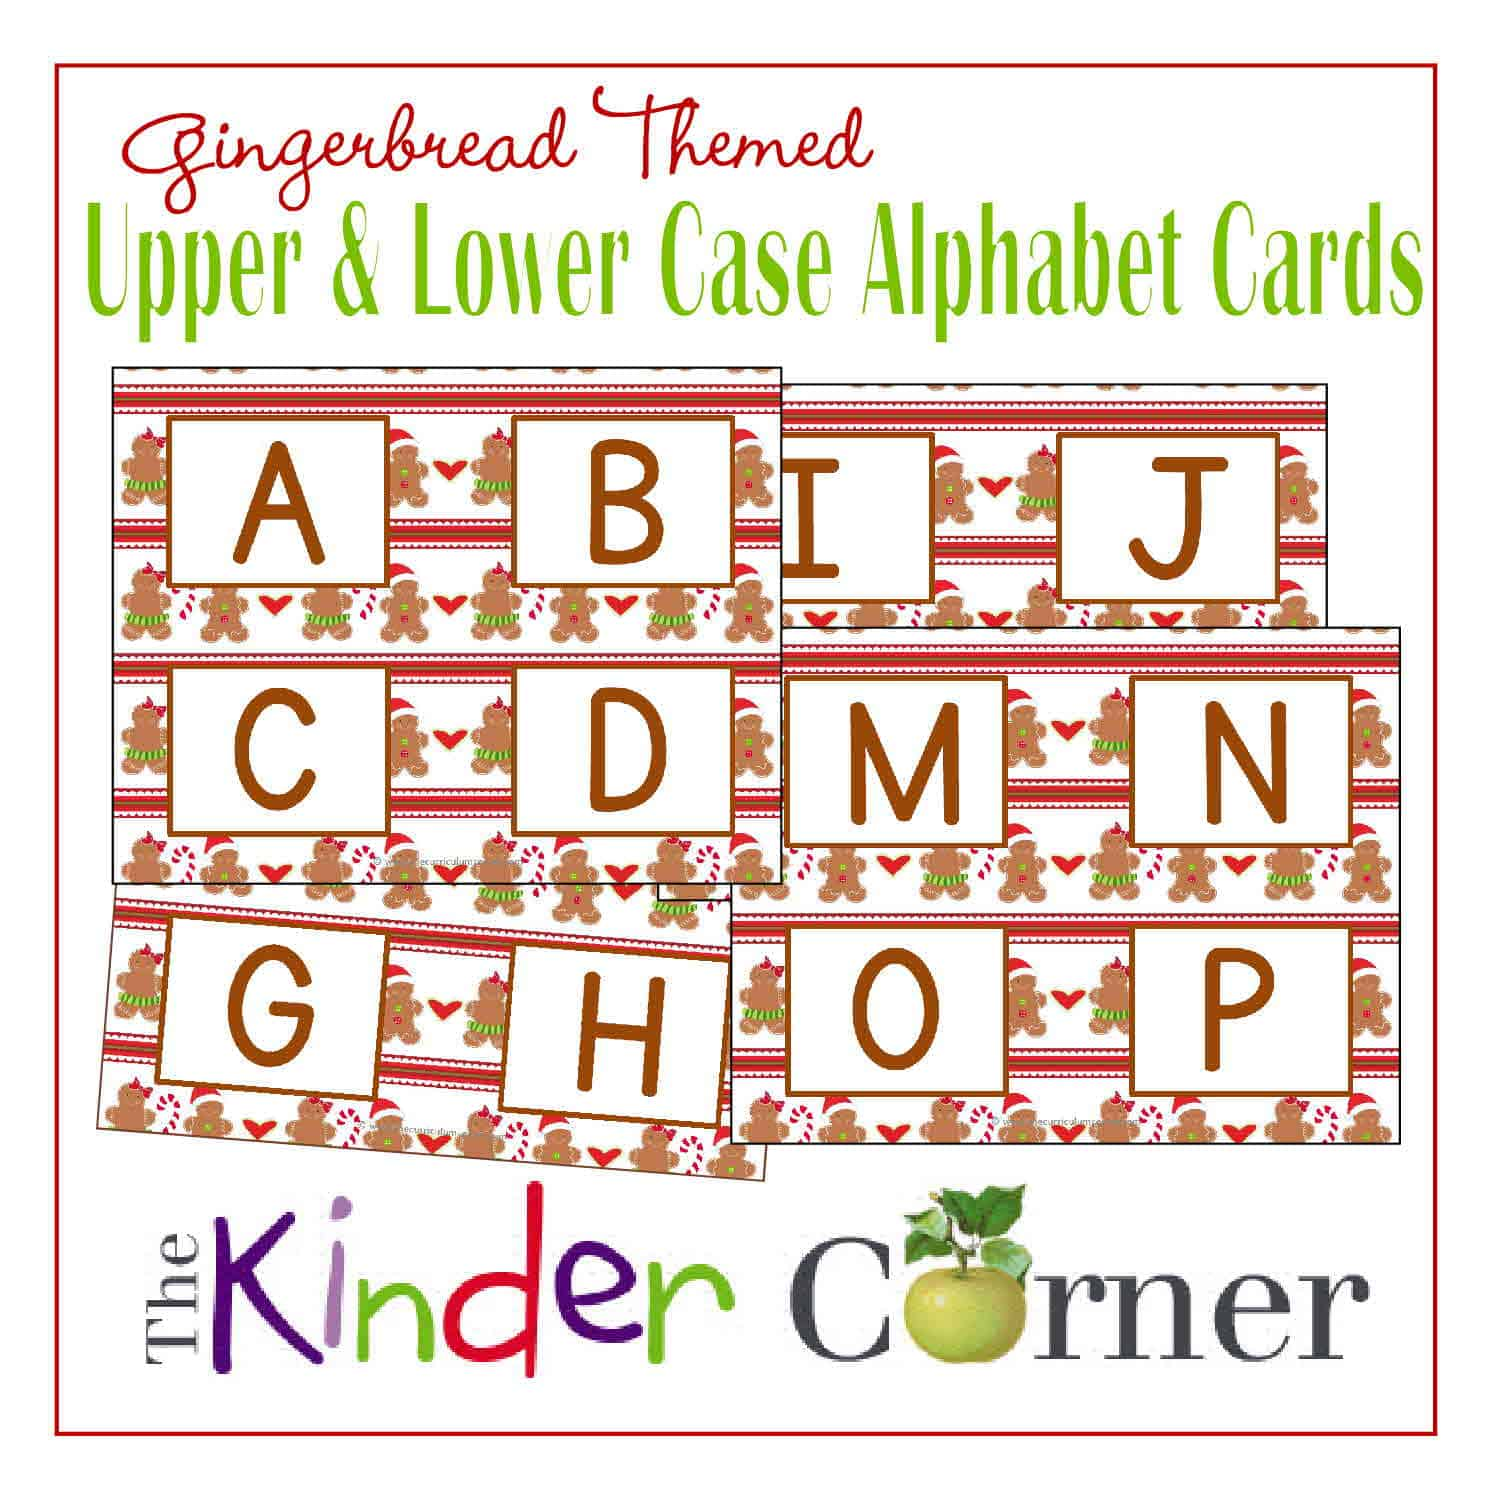 Gingerbread Themed Upper & Lowercase Letter Cards